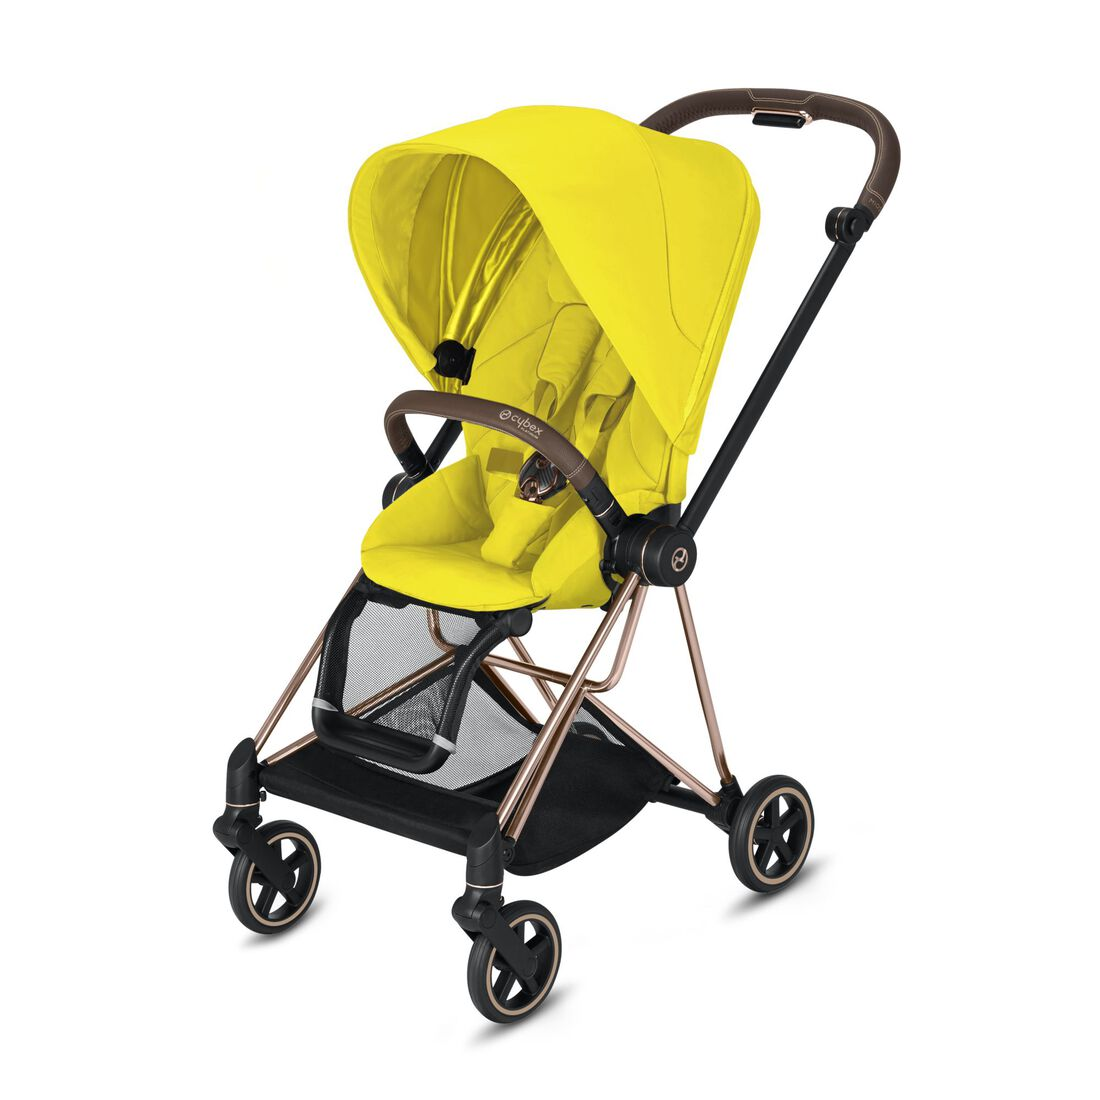 CYBEX Mios Seat Pack - Mustard Yellow in Mustard Yellow large image number 2